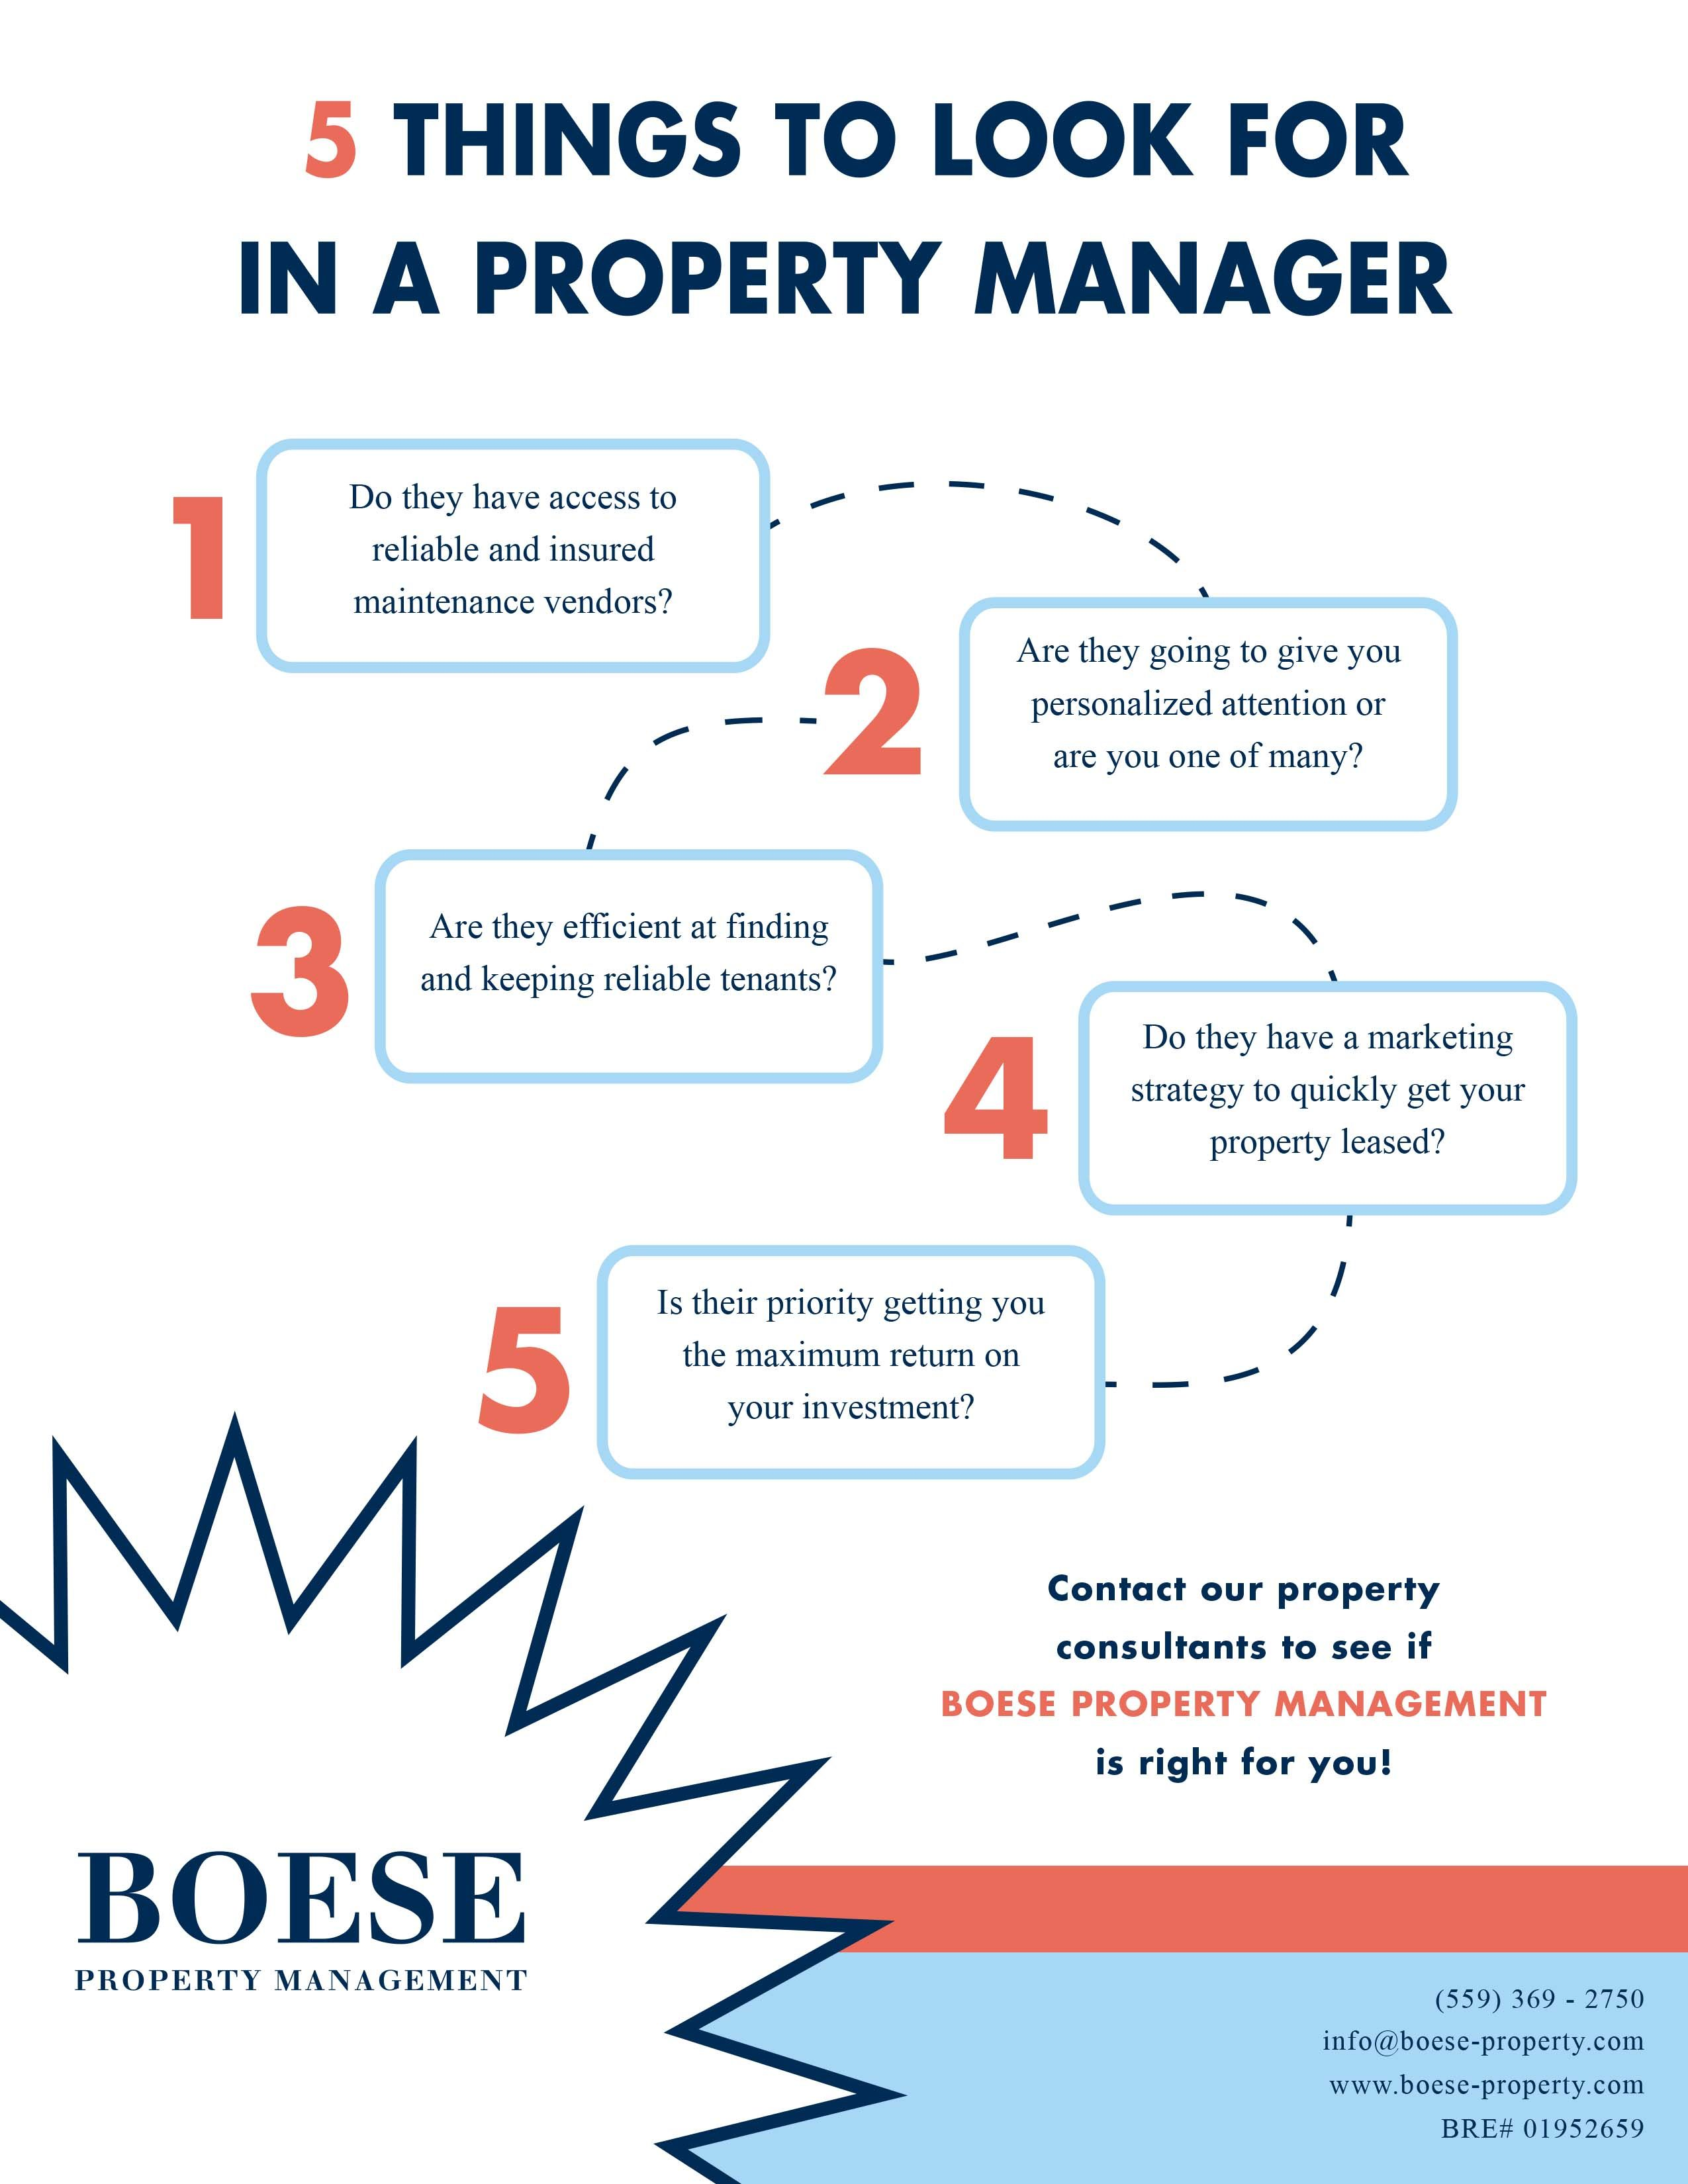 5 Things To Look For In A Property Manager By Boese Property